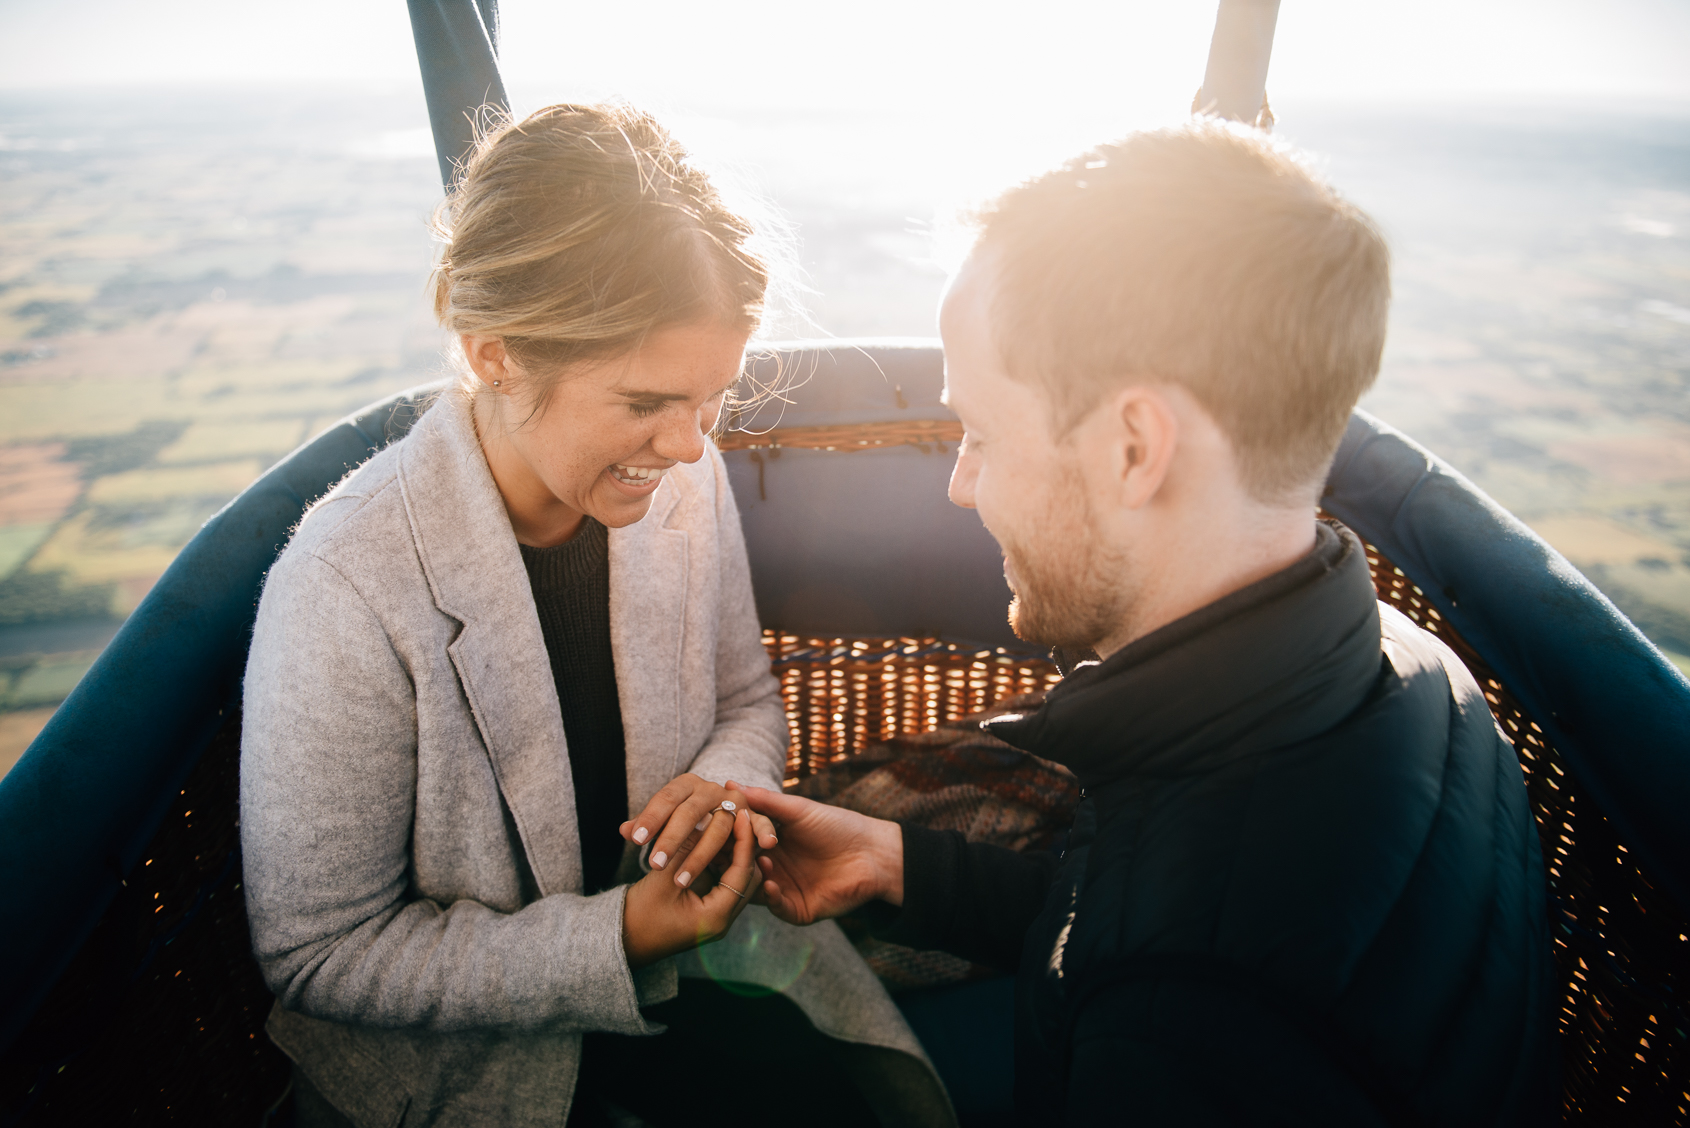 Hot Air Balloon Proposal by Sara Monika, Photographer